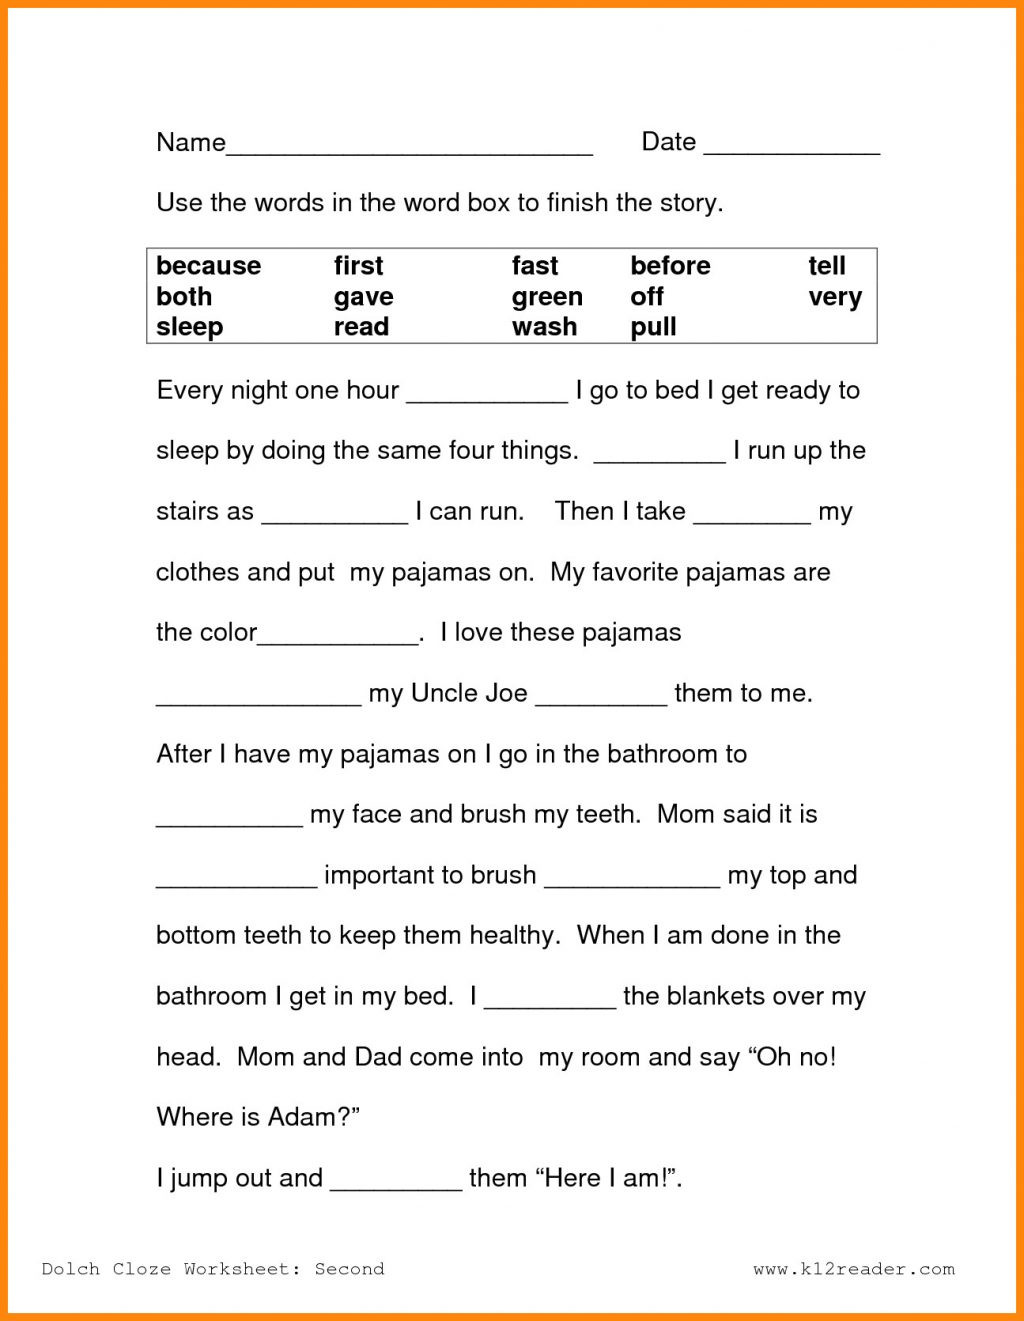 worksheet ideas second gradeding prehension pdf writing worksheets free 2nd printable numbers 1024x1321